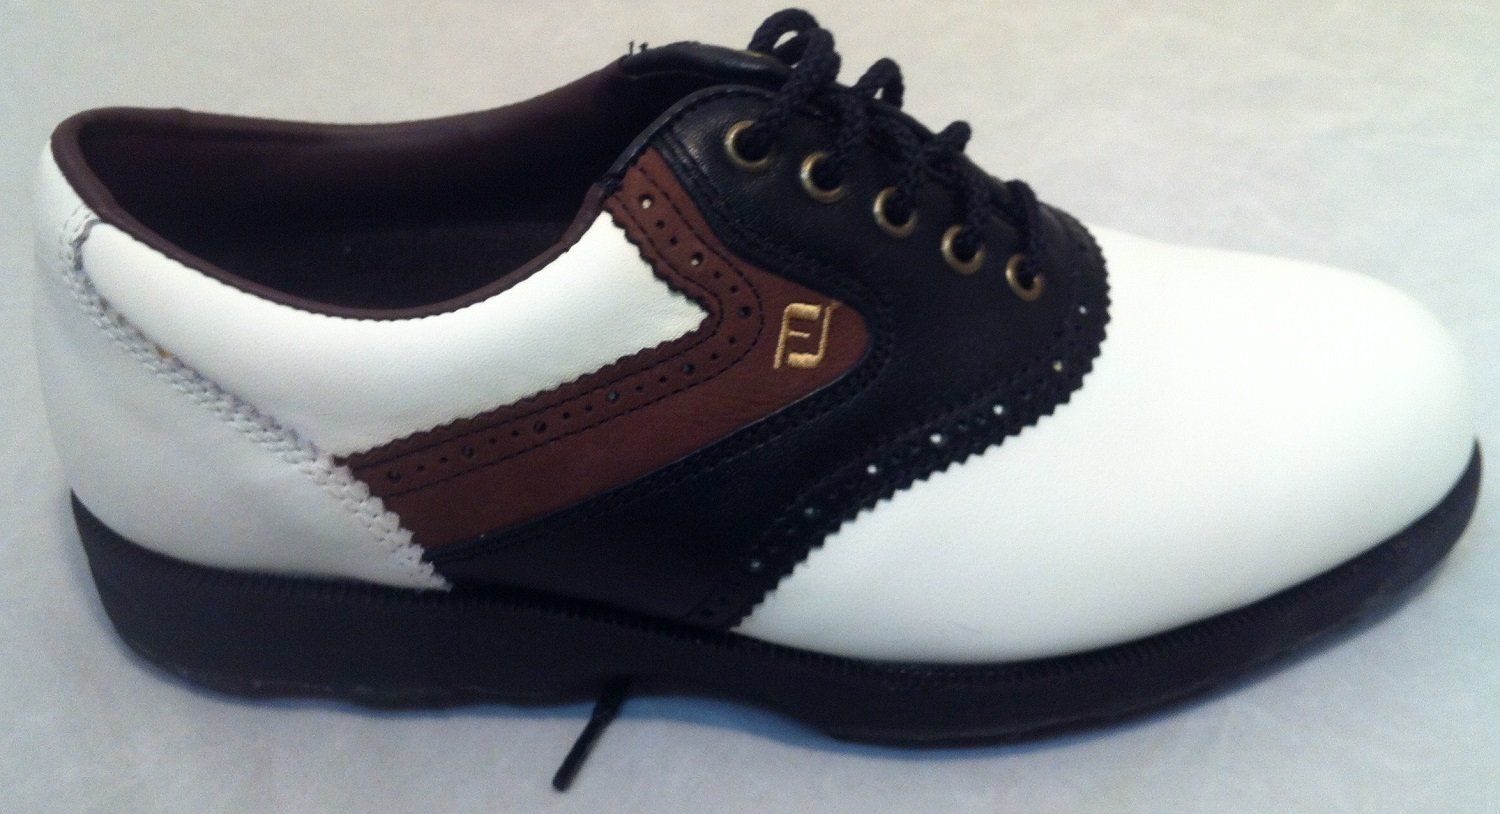 725be35da67d08 FootJoy Soft-Joys Terrains Waterproof Golf Shoes 57614 4M: Amazon.co.uk:  Sports & Outdoors